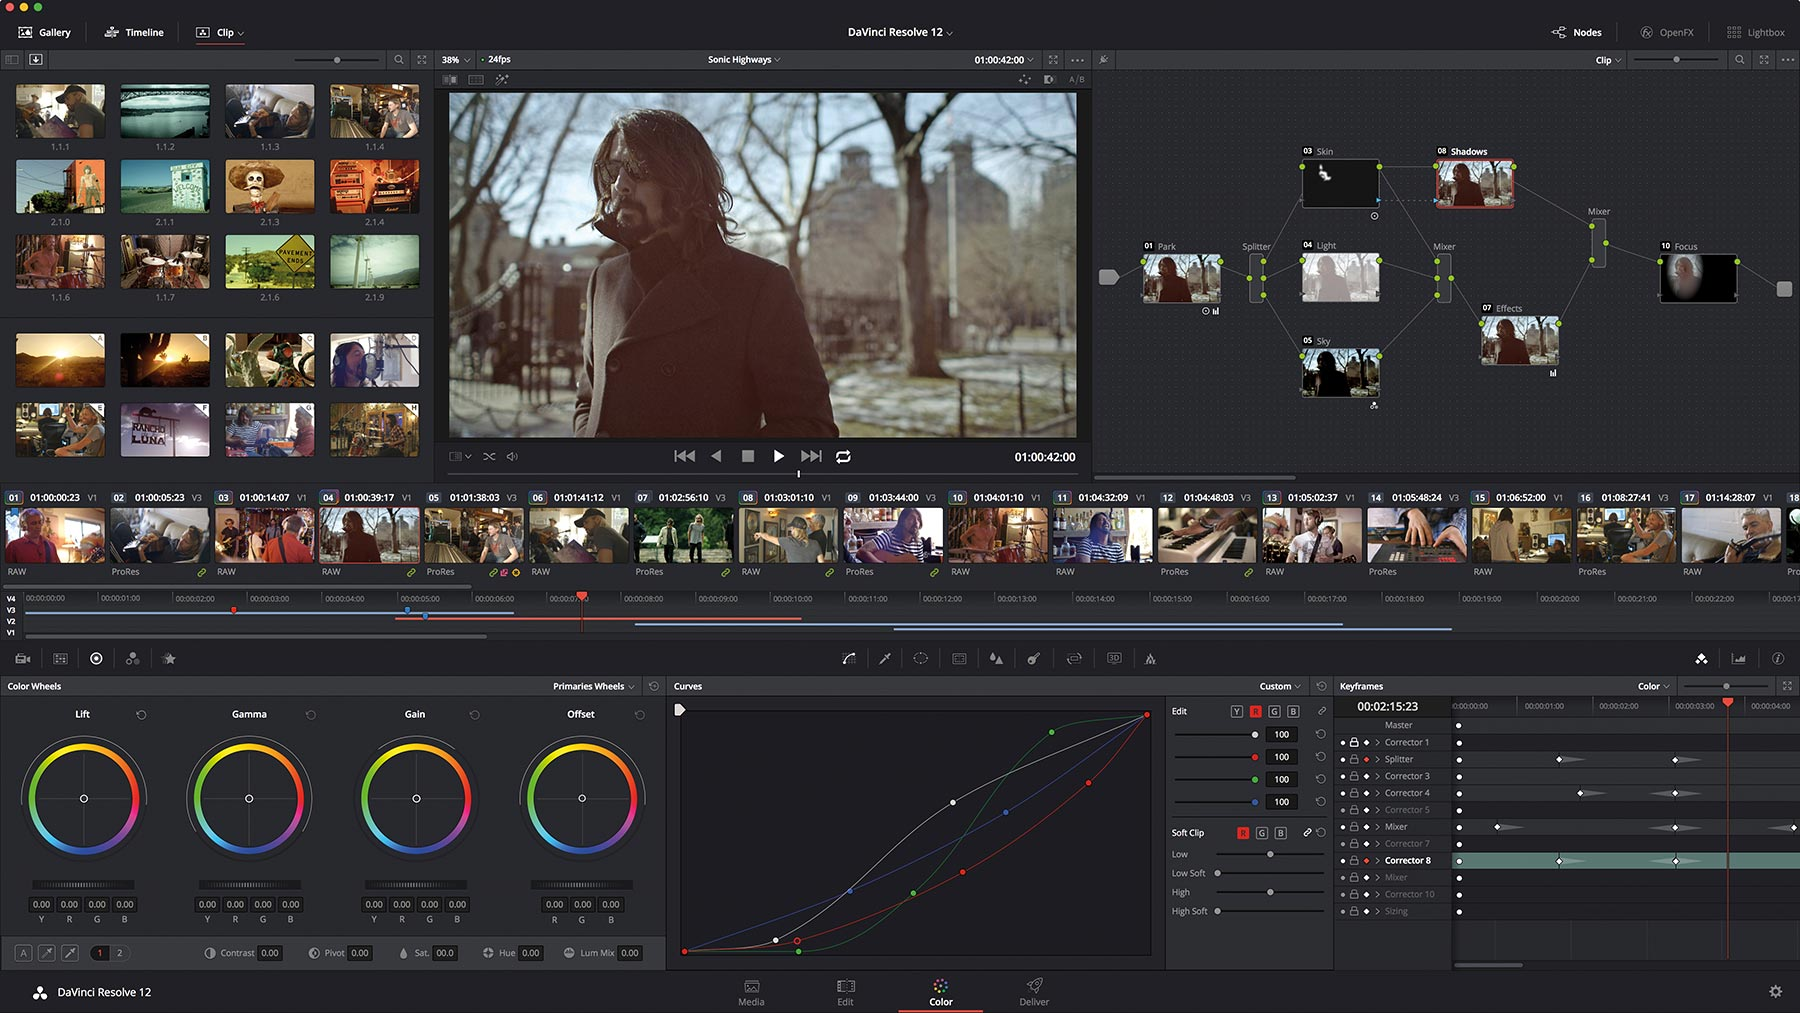 Blackmagic Design DaVinci Resolve 12 « digitalfilms